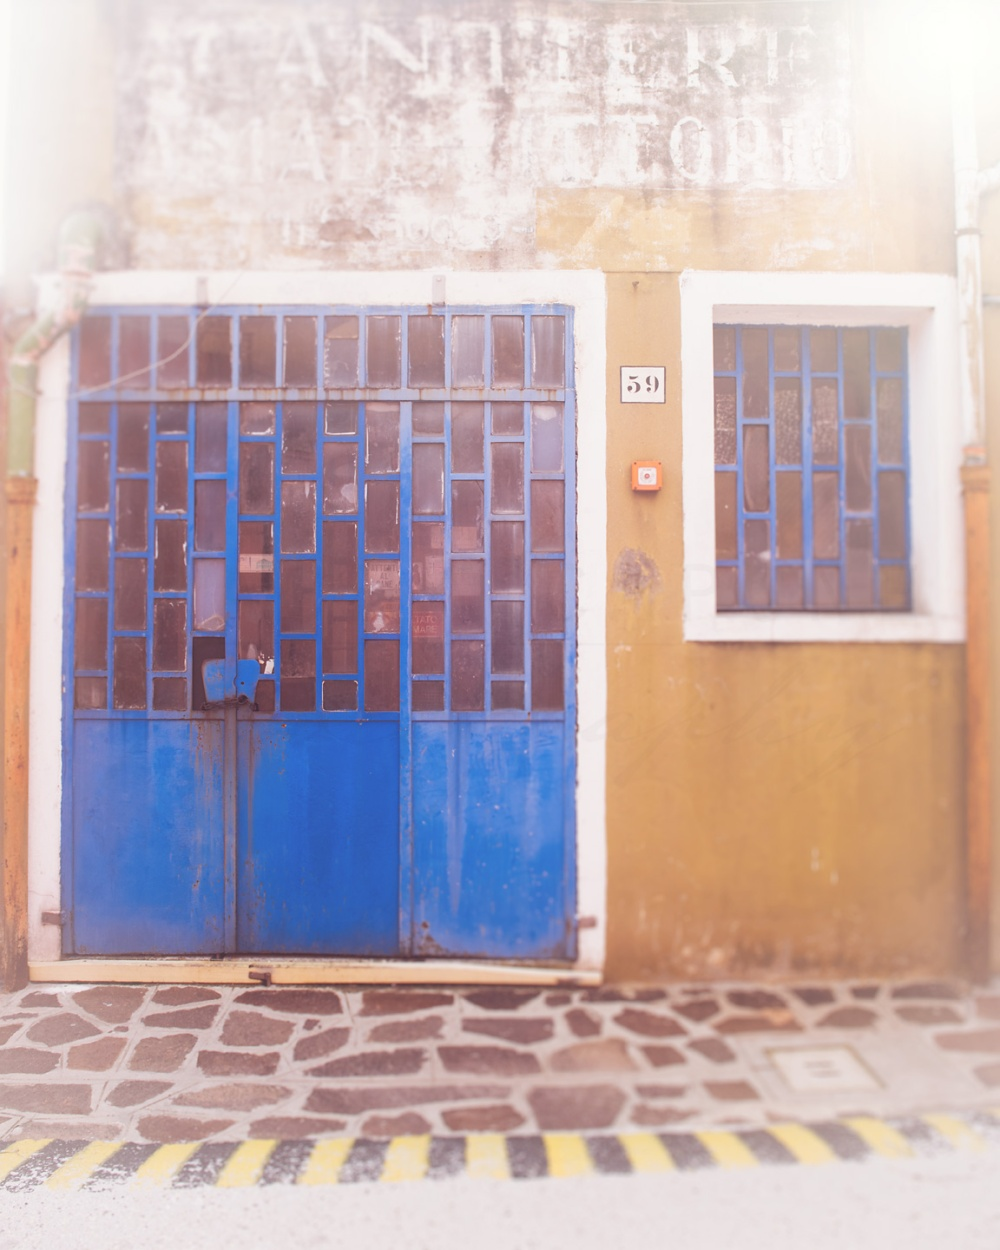 Bright blue door against a mustard yellow wall on the island of Burano, Italy. Travel and architecture photography by Tracey Capone.